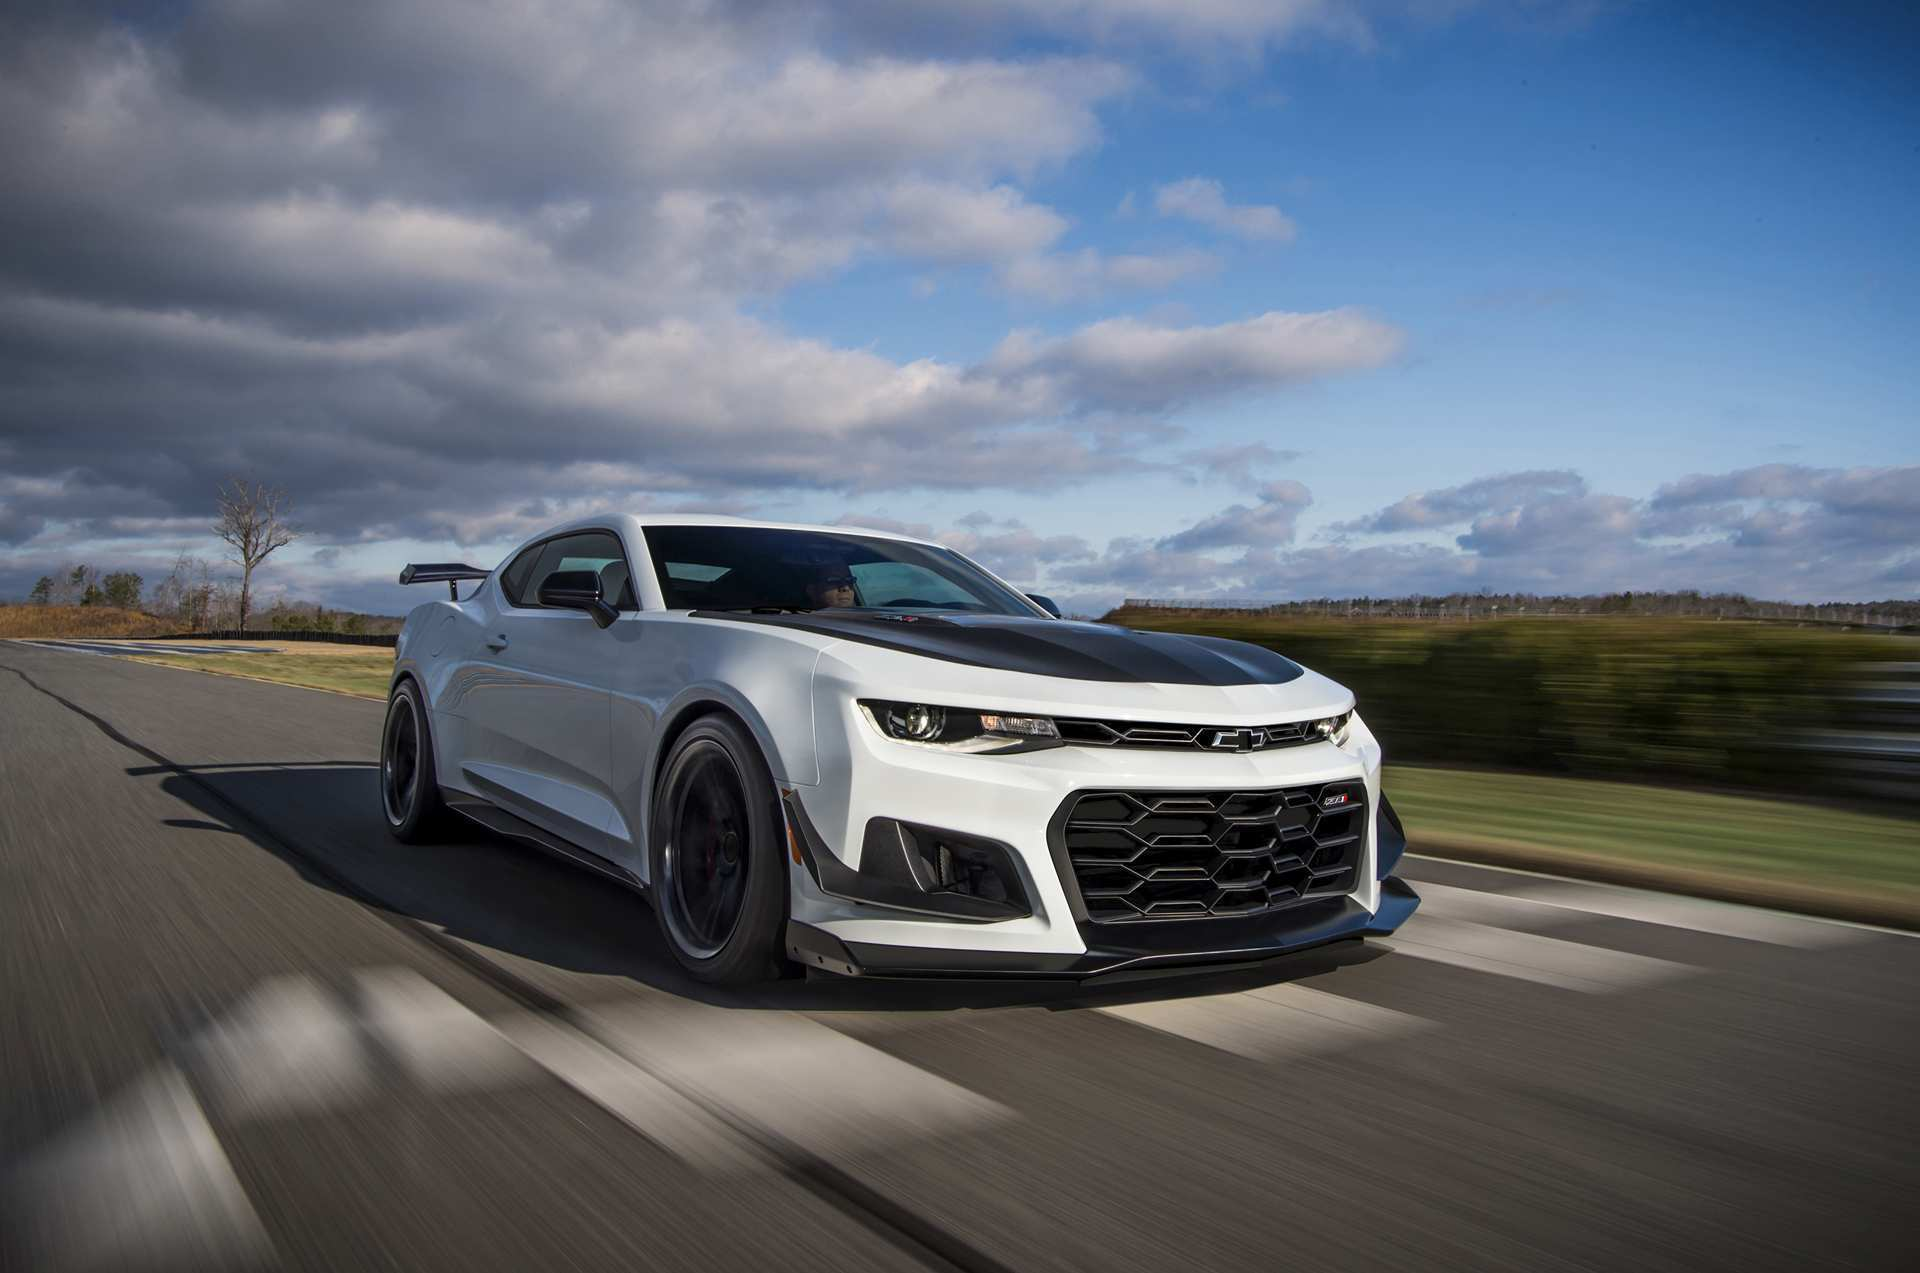 42 New Chevrolet Camaro 2020 Pictures Model